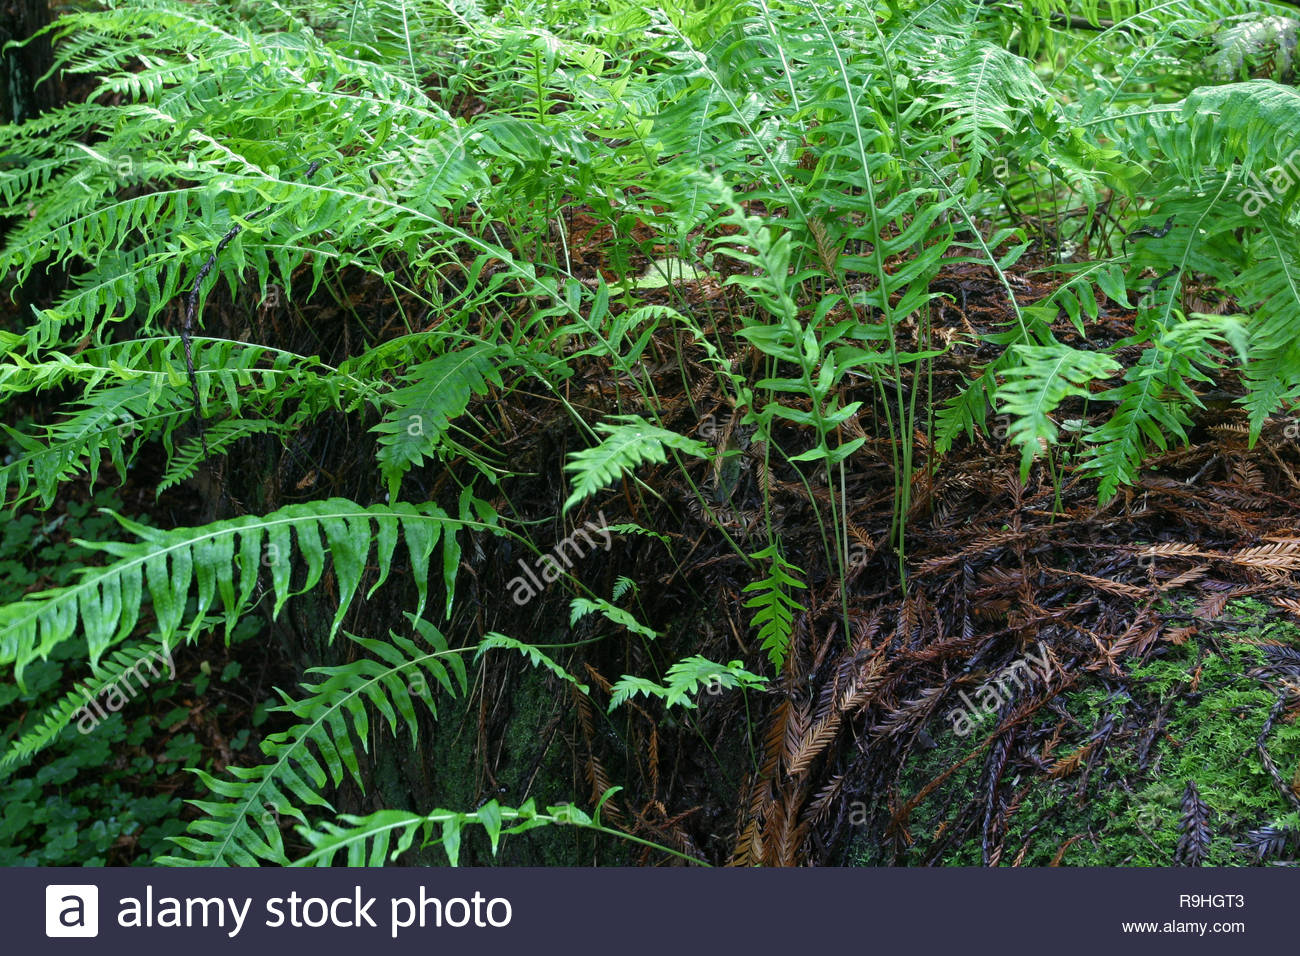 Licorice fern (Polypodium glycrrhiza) on dead tree log redwood in forest, Drury-Chaney Trail, Humboldt Redwoods State Park, California, USA - Stock Image